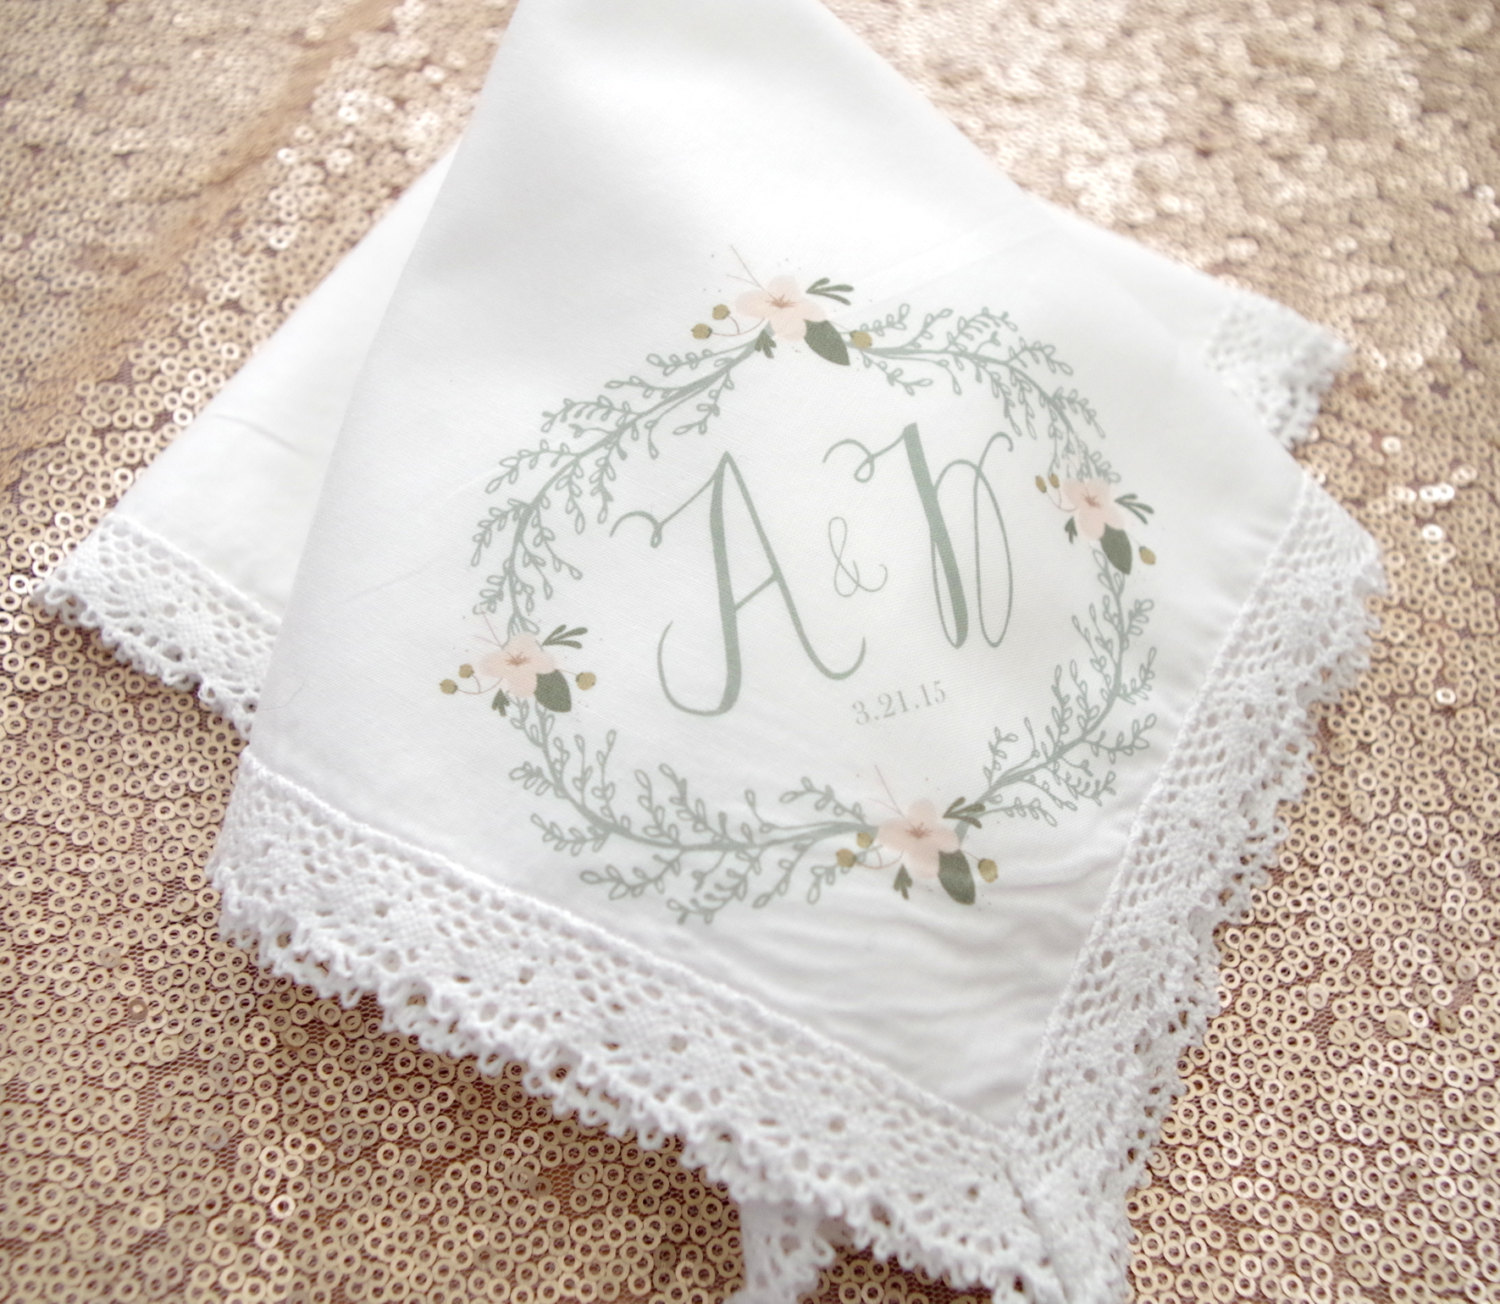 gorgeous floral monogram handkerchief | personalized wedding handkerchiefs and wedding hankies | https://emmalinebride.com/gifts/personalized-wedding-handkerchiefs/